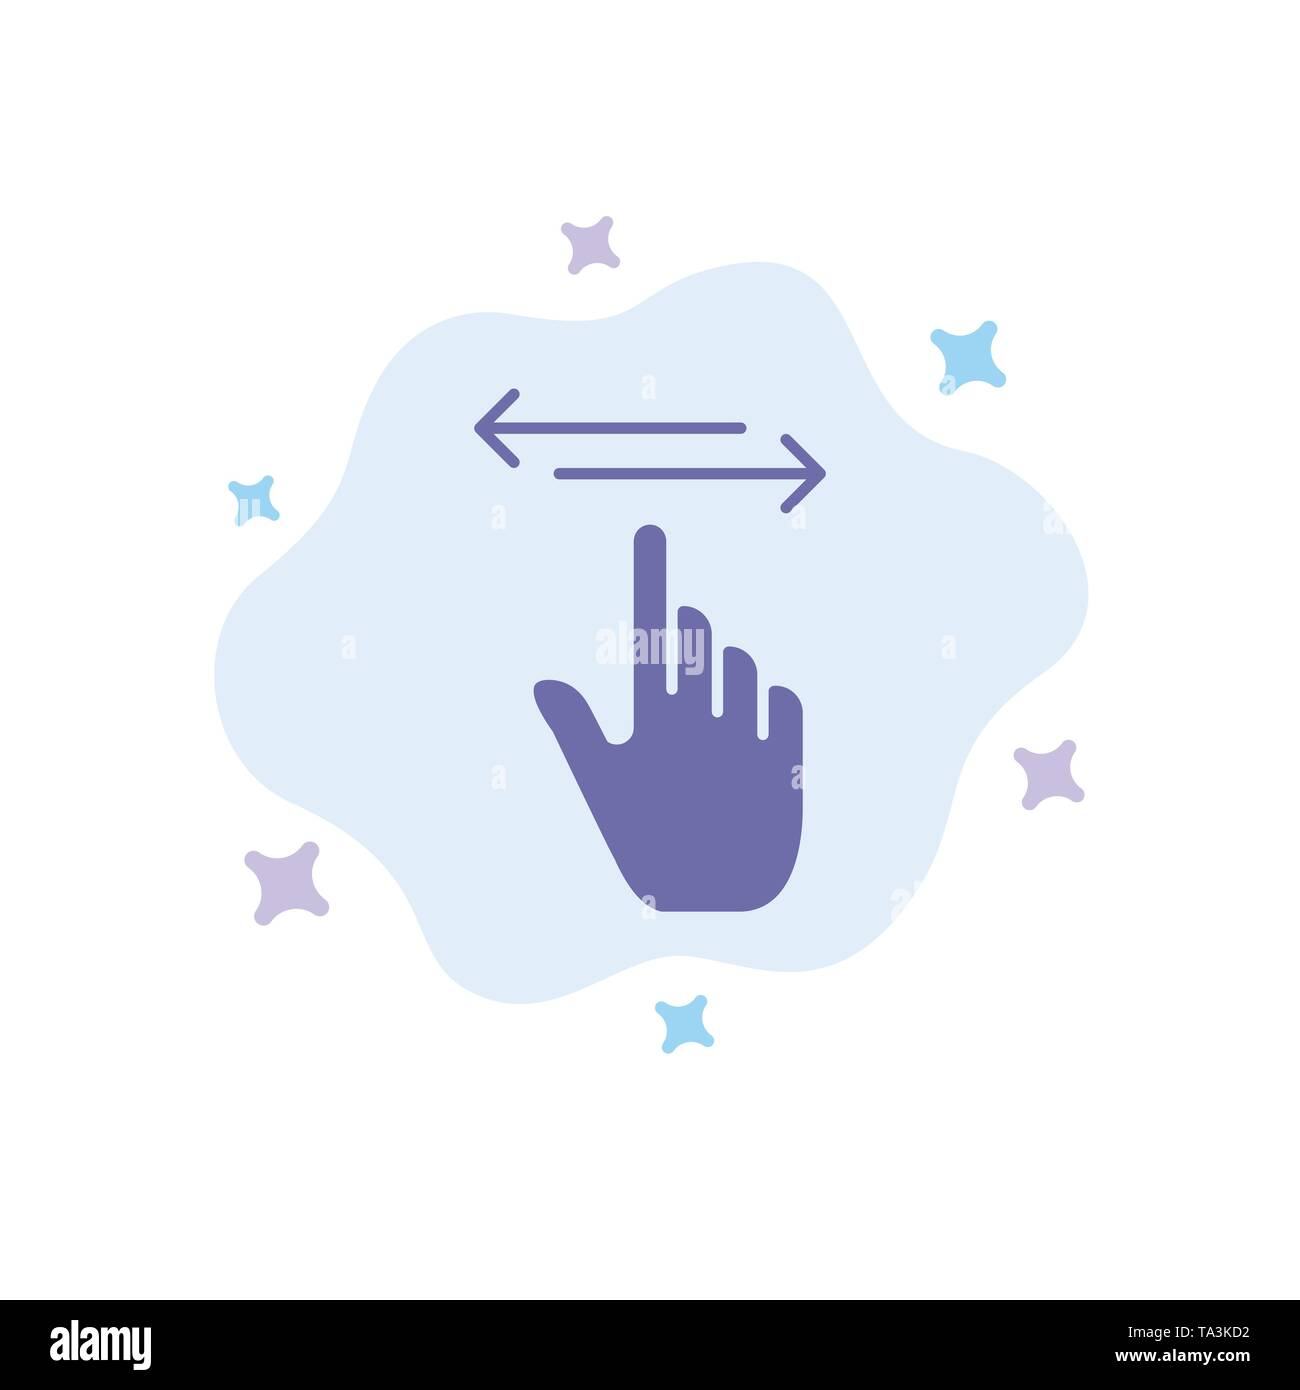 Finger, Gestures, Hand, Left, Right Blue Icon on Abstract Cloud Background - Stock Image